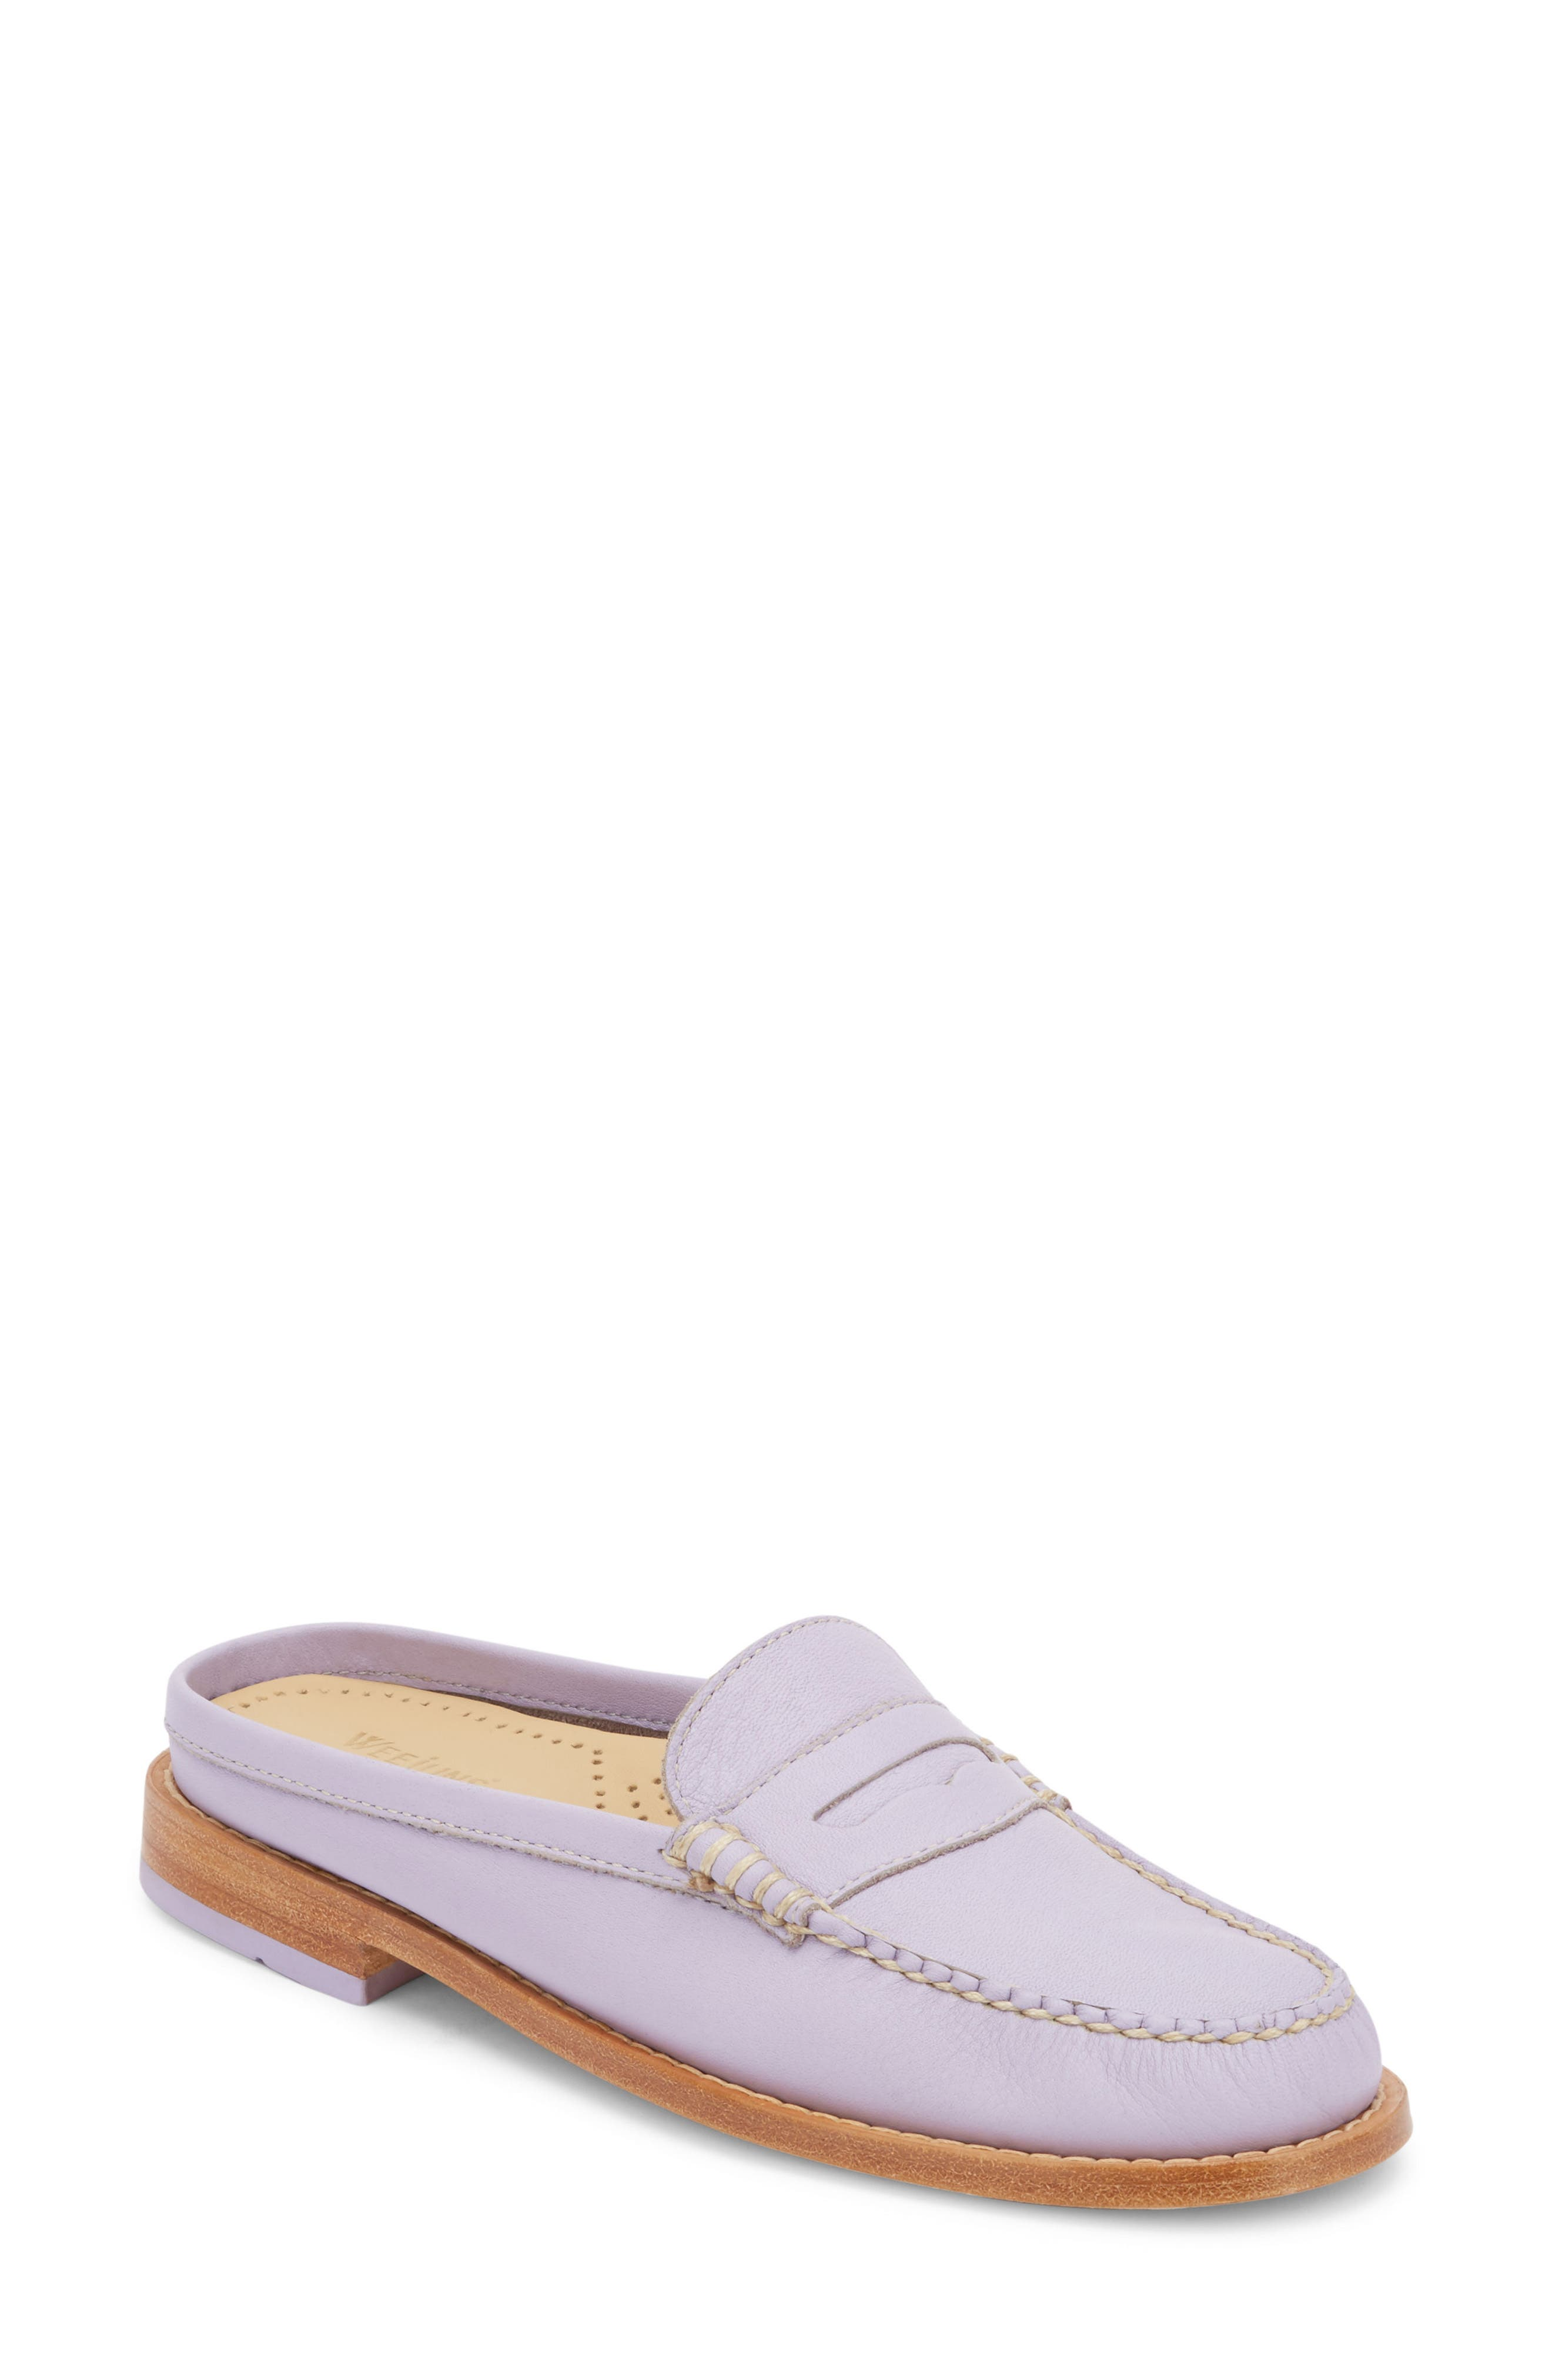 Wynn Loafer Mule,                             Main thumbnail 9, color,